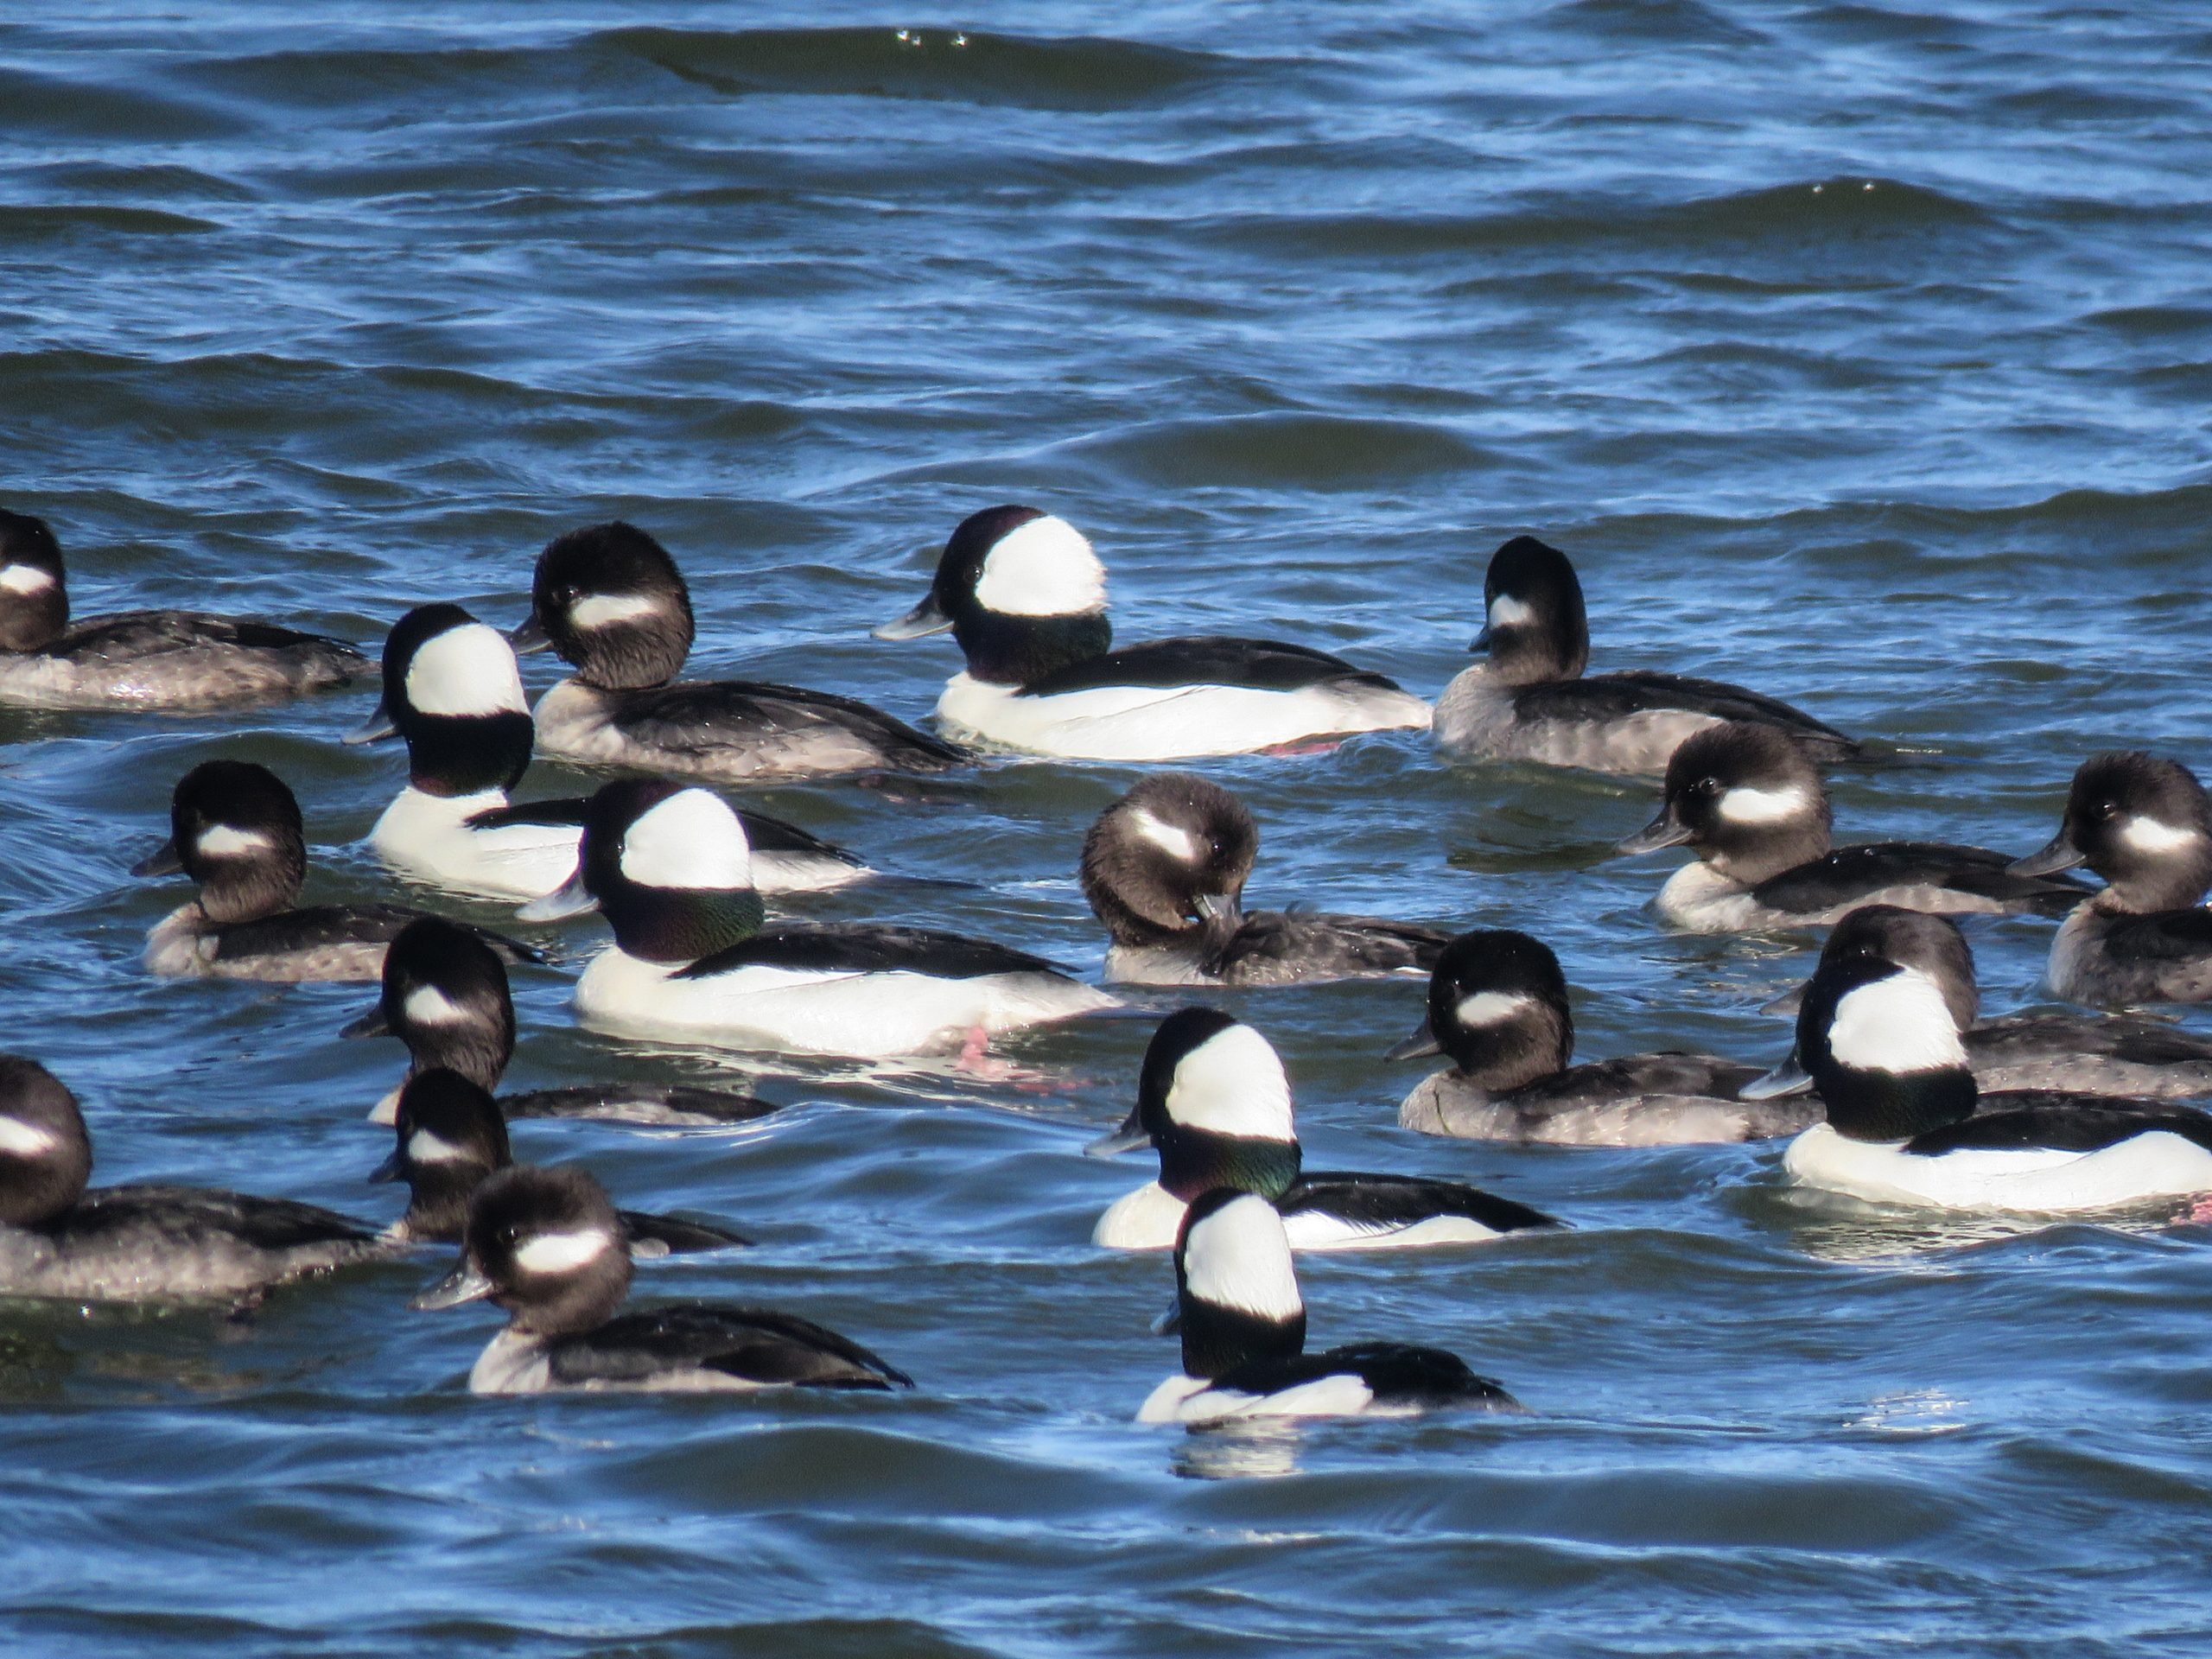 Bufflehead are winter residents of the Lowcountry